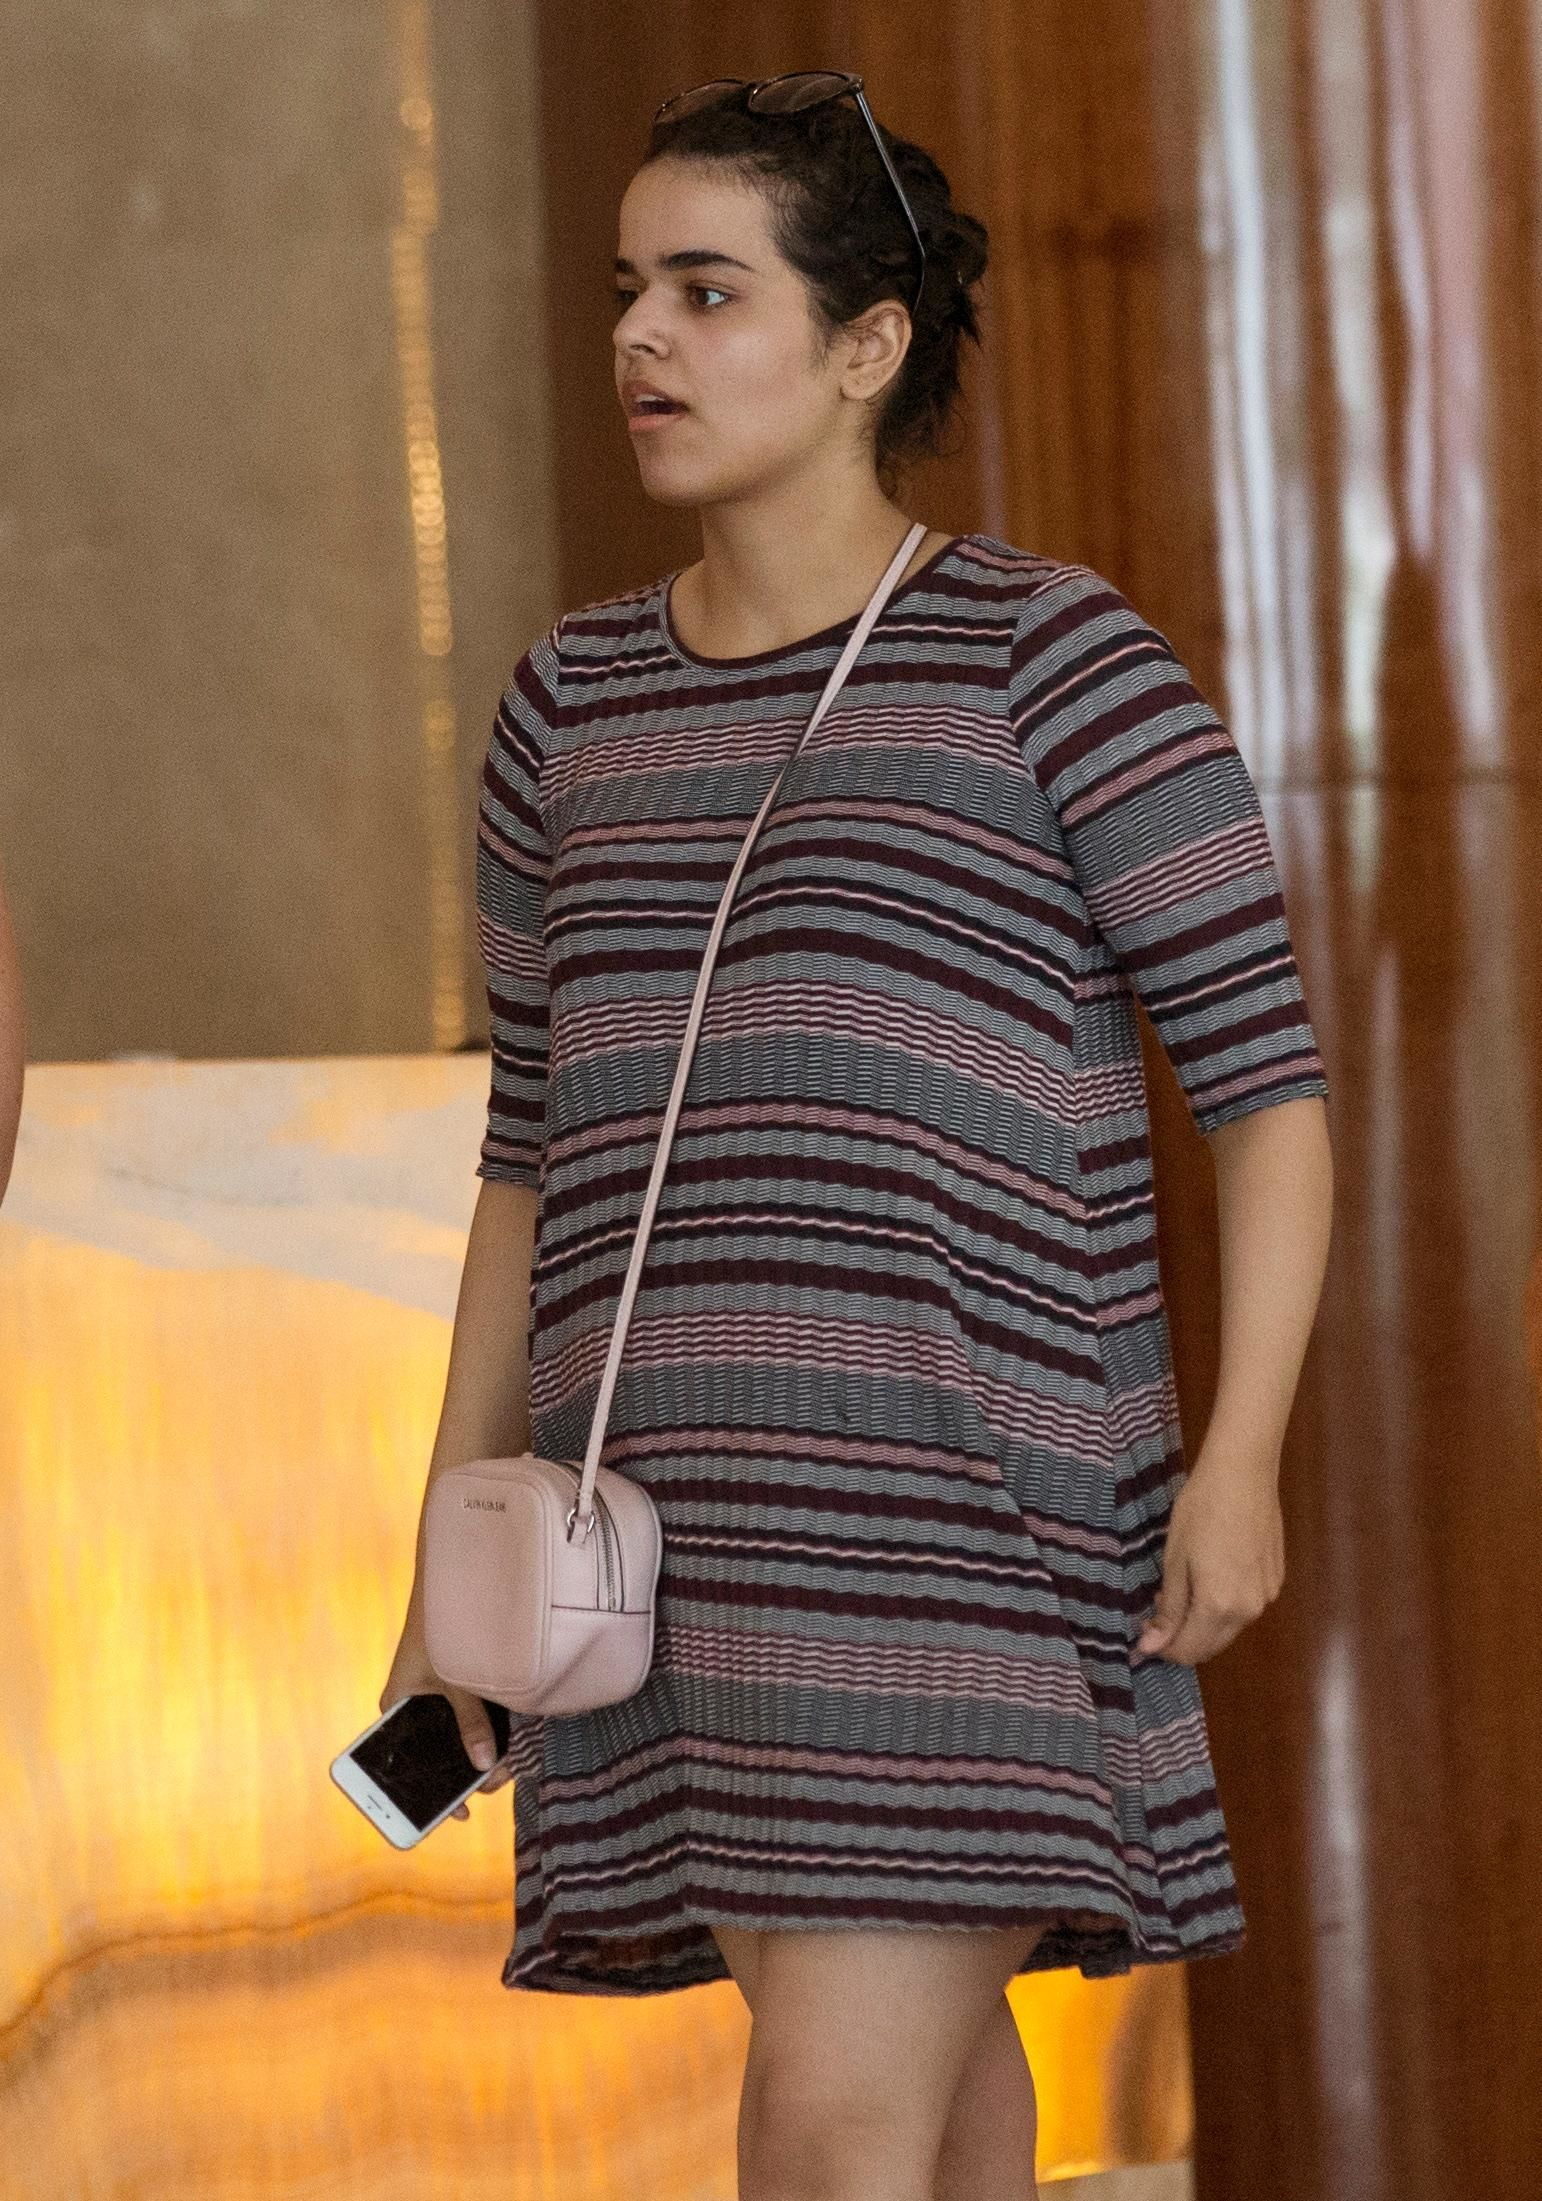 Rahaf Mohammed Alqunun holds a mobile phone in Bangkok, Thailand, Friday, Jan. 11. (AP Photo/Sakchai Lalit)